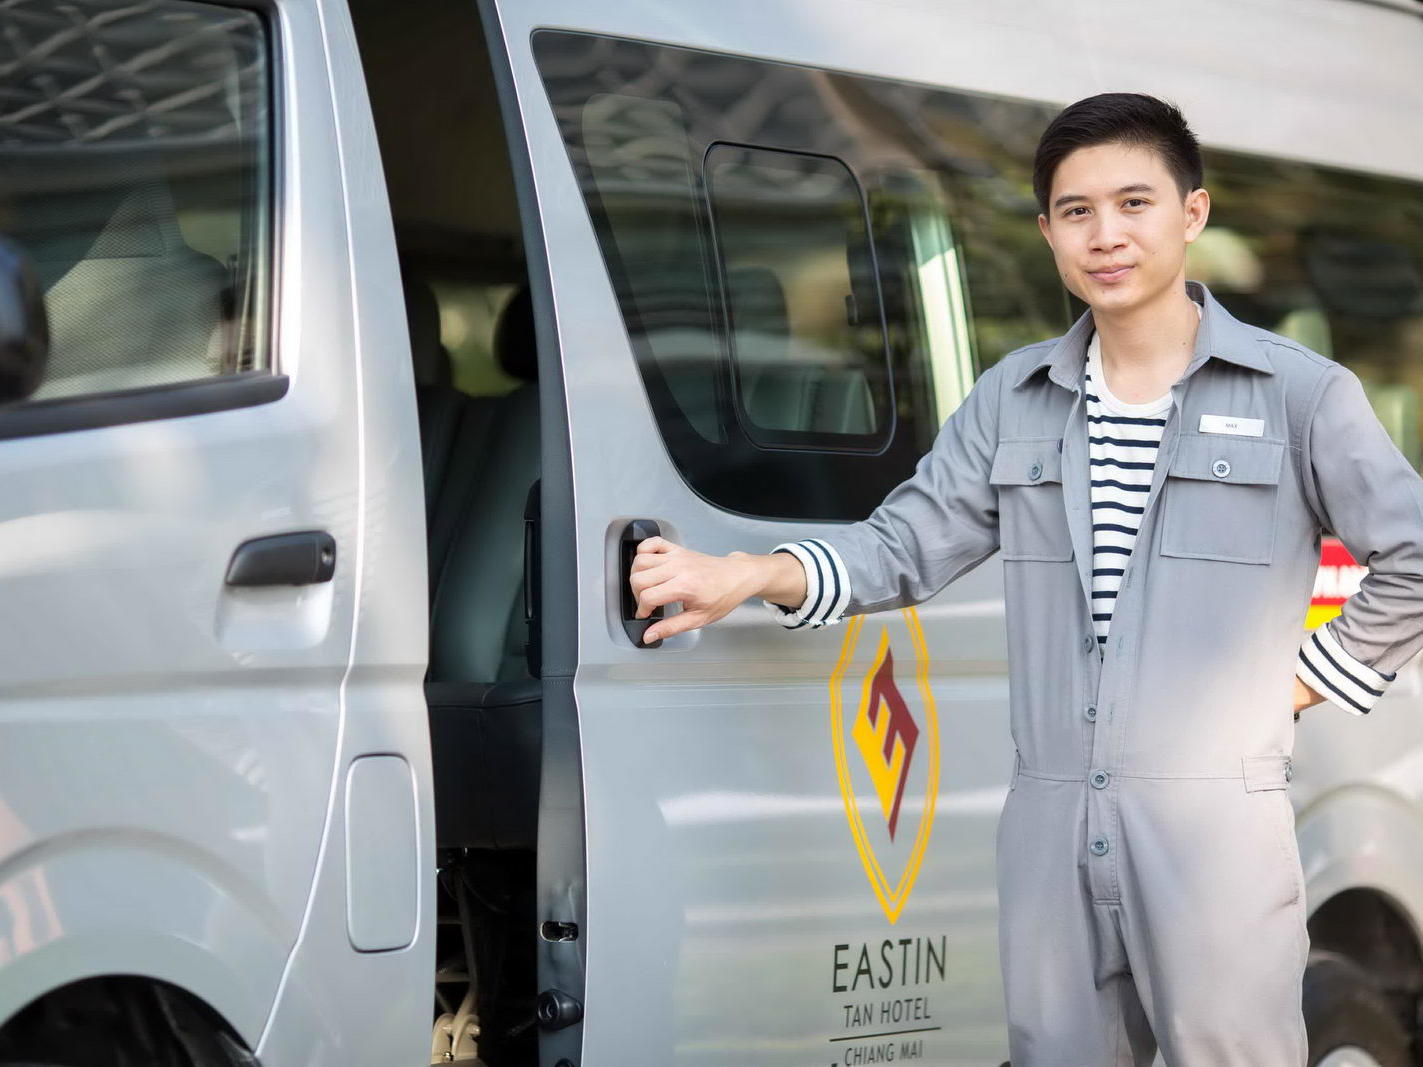 Man opening the door of a vehicle - Eastin Hotel